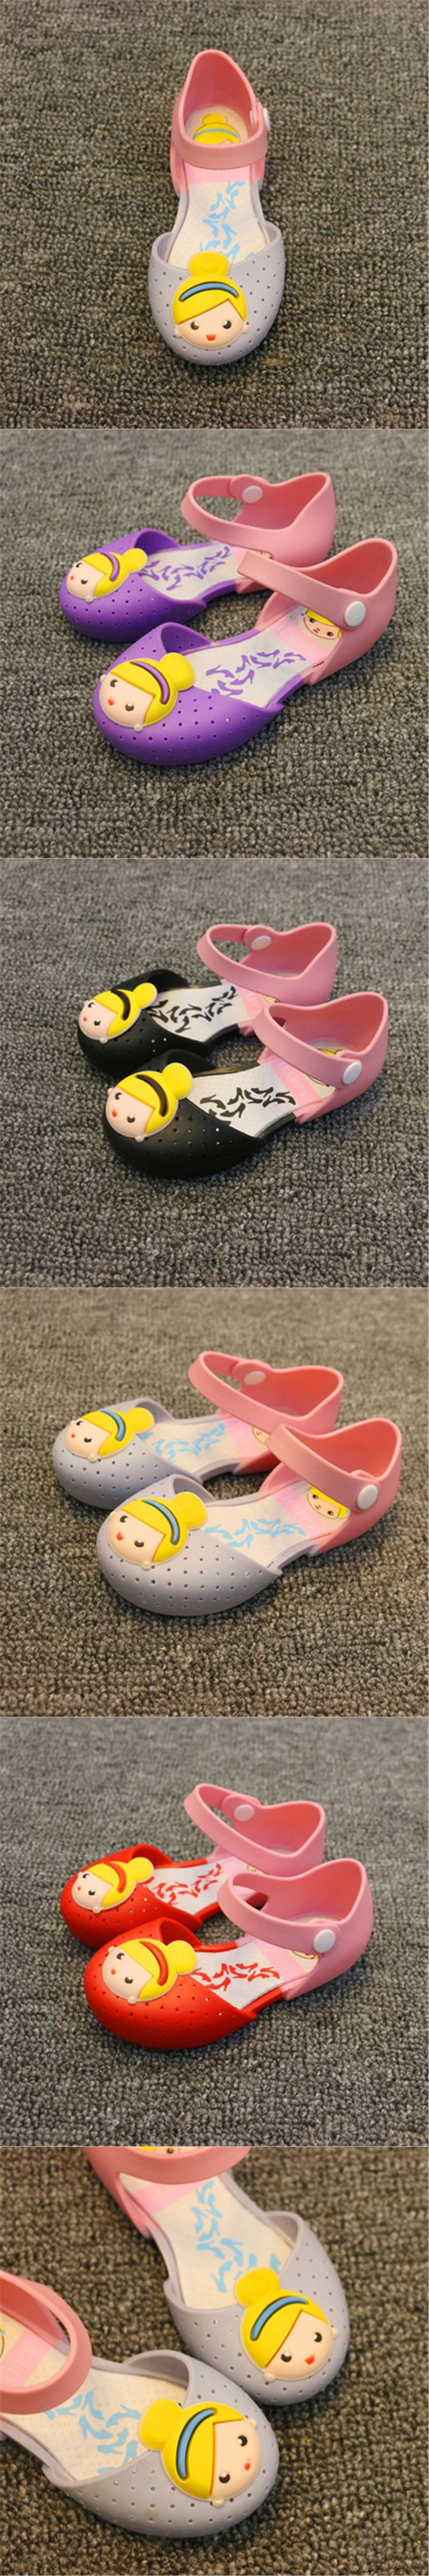 2017 summer cute girl sandals jelly shoes princess print shoes waterproof non-slip breathable children's shoes Fight color